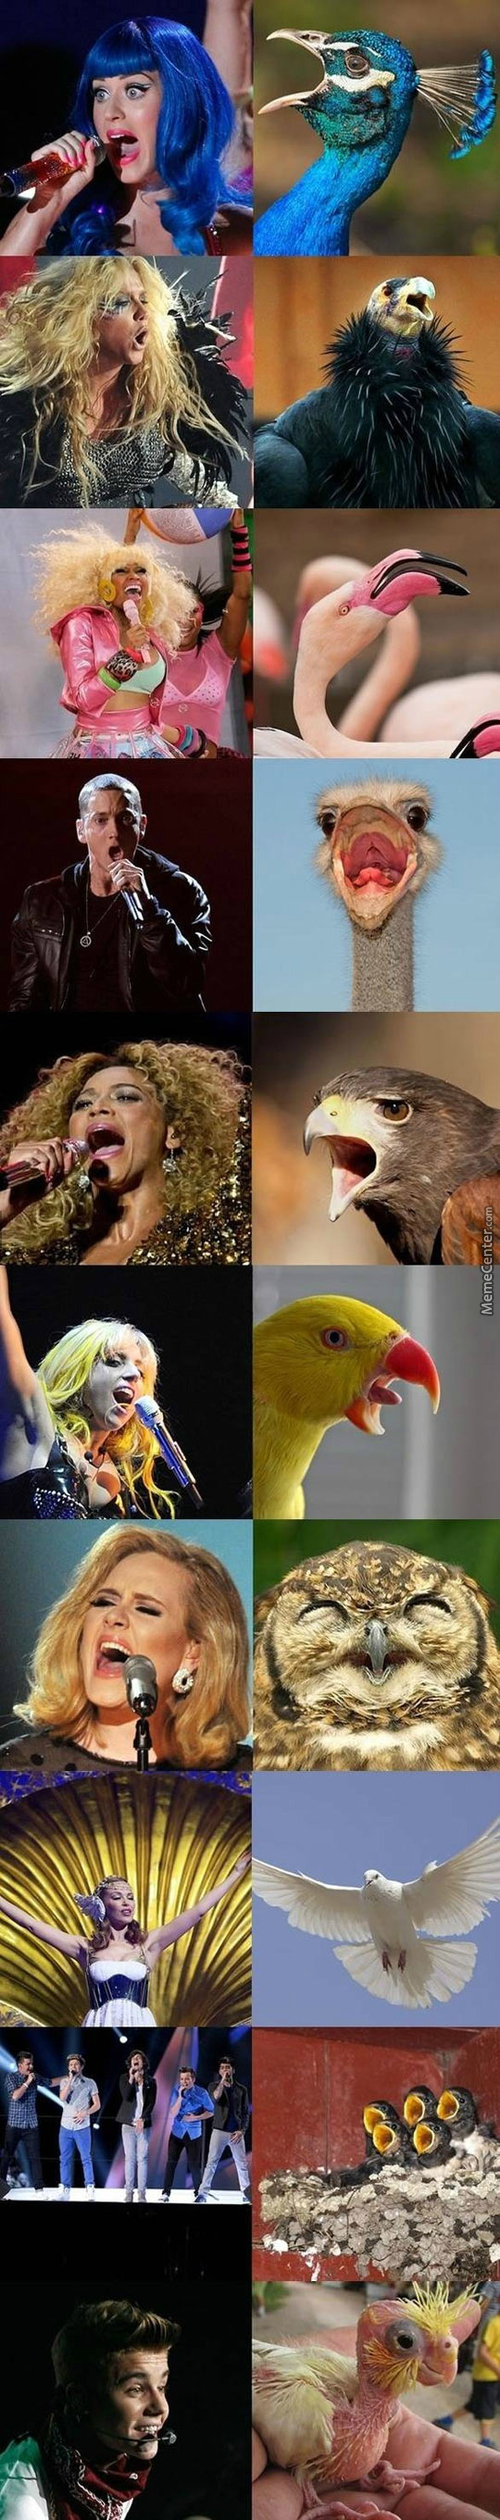 If Popstars Were Birds